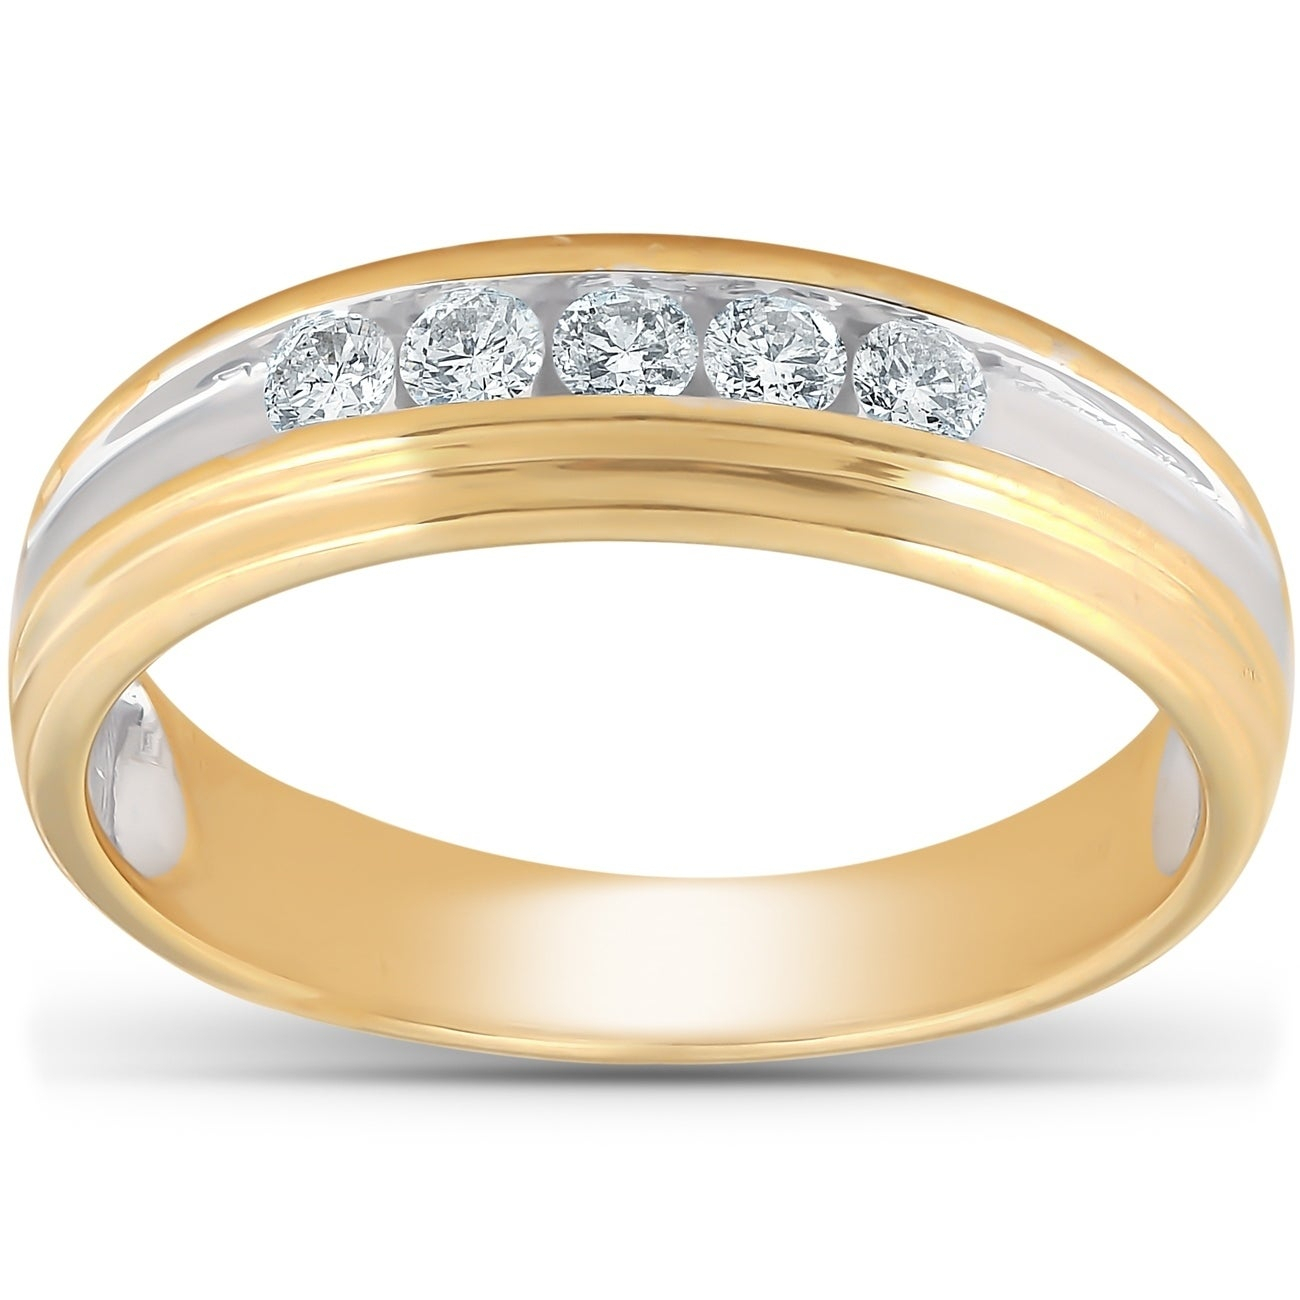 Pompeii3 10K Yellow Gold 1/4 Ct Tdw Mens Diamond Channel Set Wedding Ring  Anniversary Band With Recent Diamond Channel Anniversary Bands In Gold (Gallery 25 of 25)